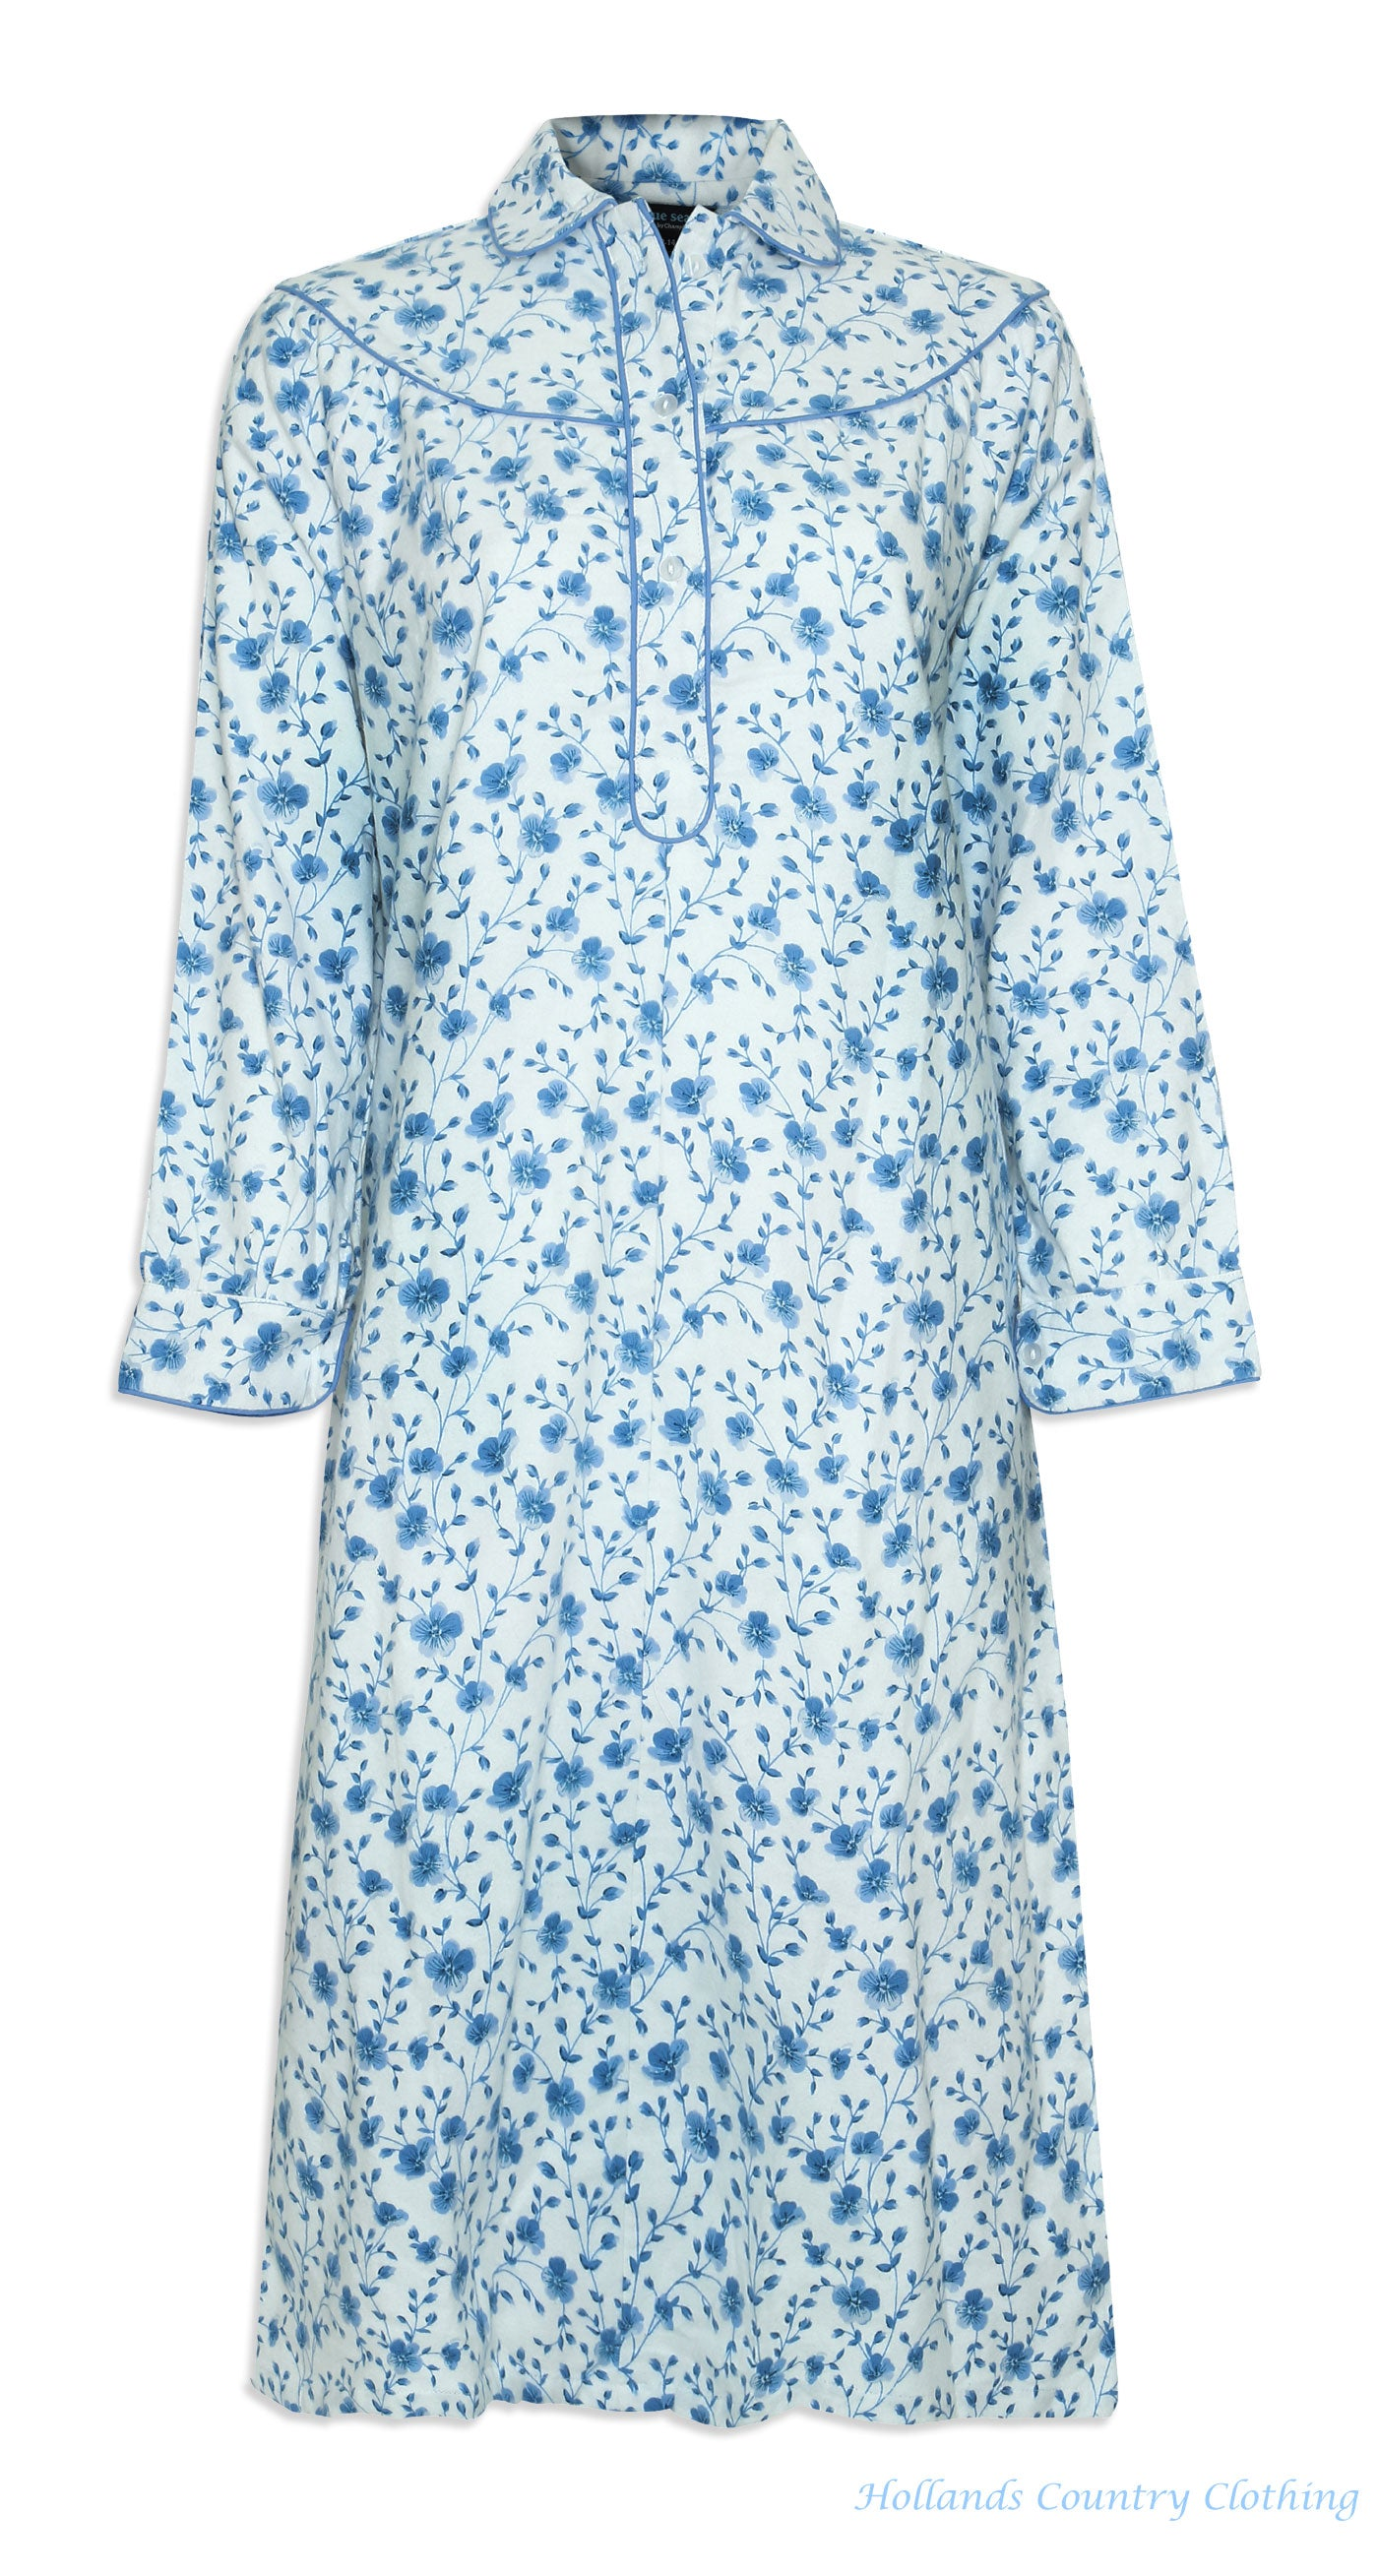 front view Champion Ladies Eleanor Floral Nightdress cotton in blue and pink flower pattern